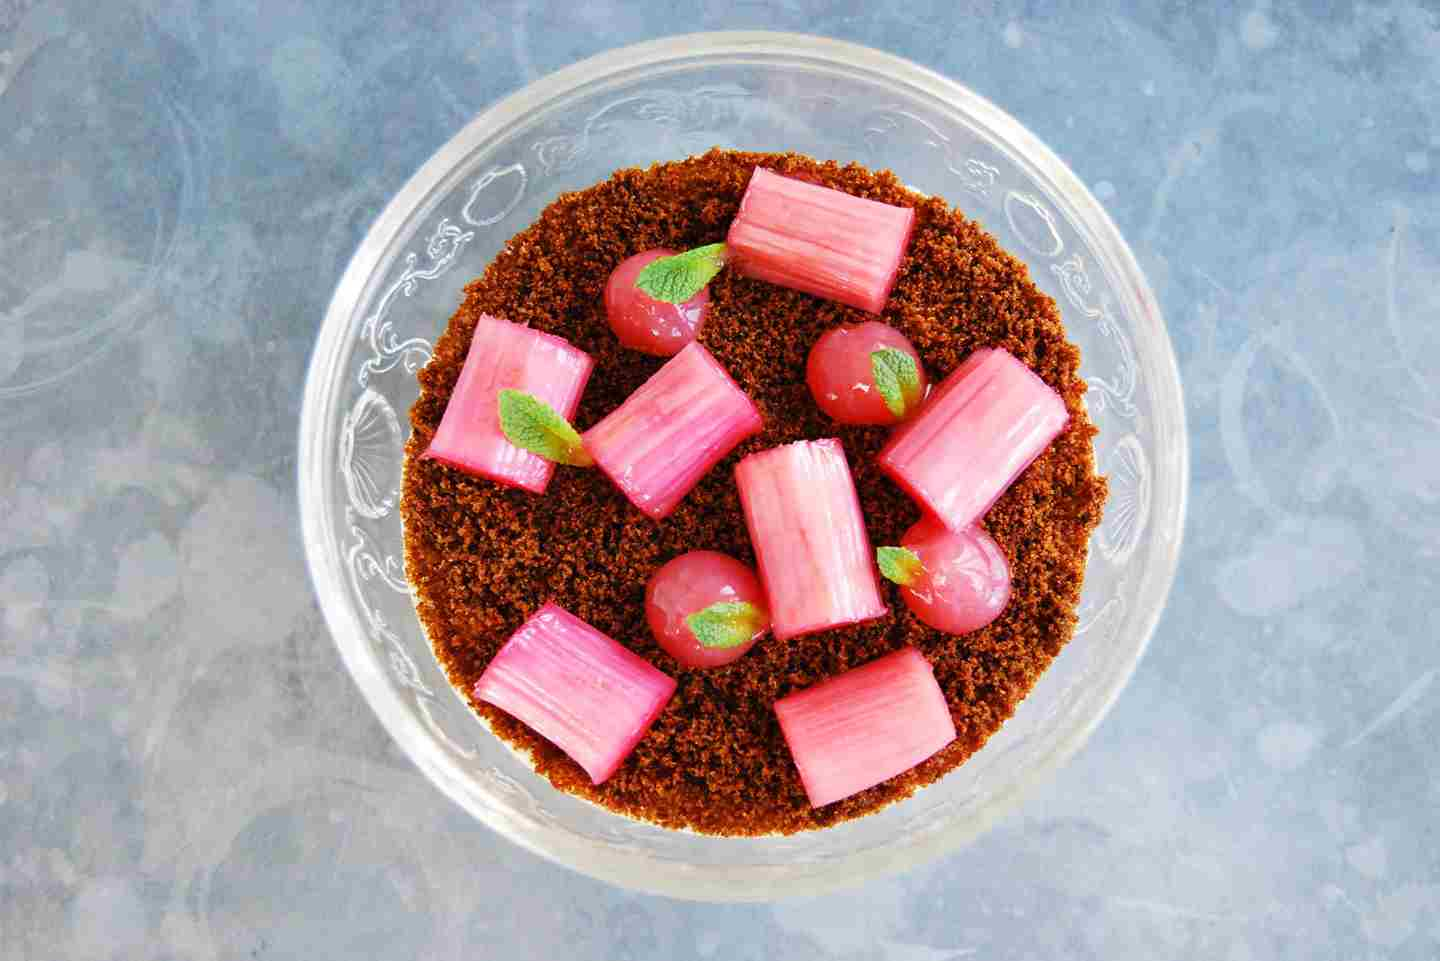 Chilled rice pudding, rhubarb and gingerbread.jpg